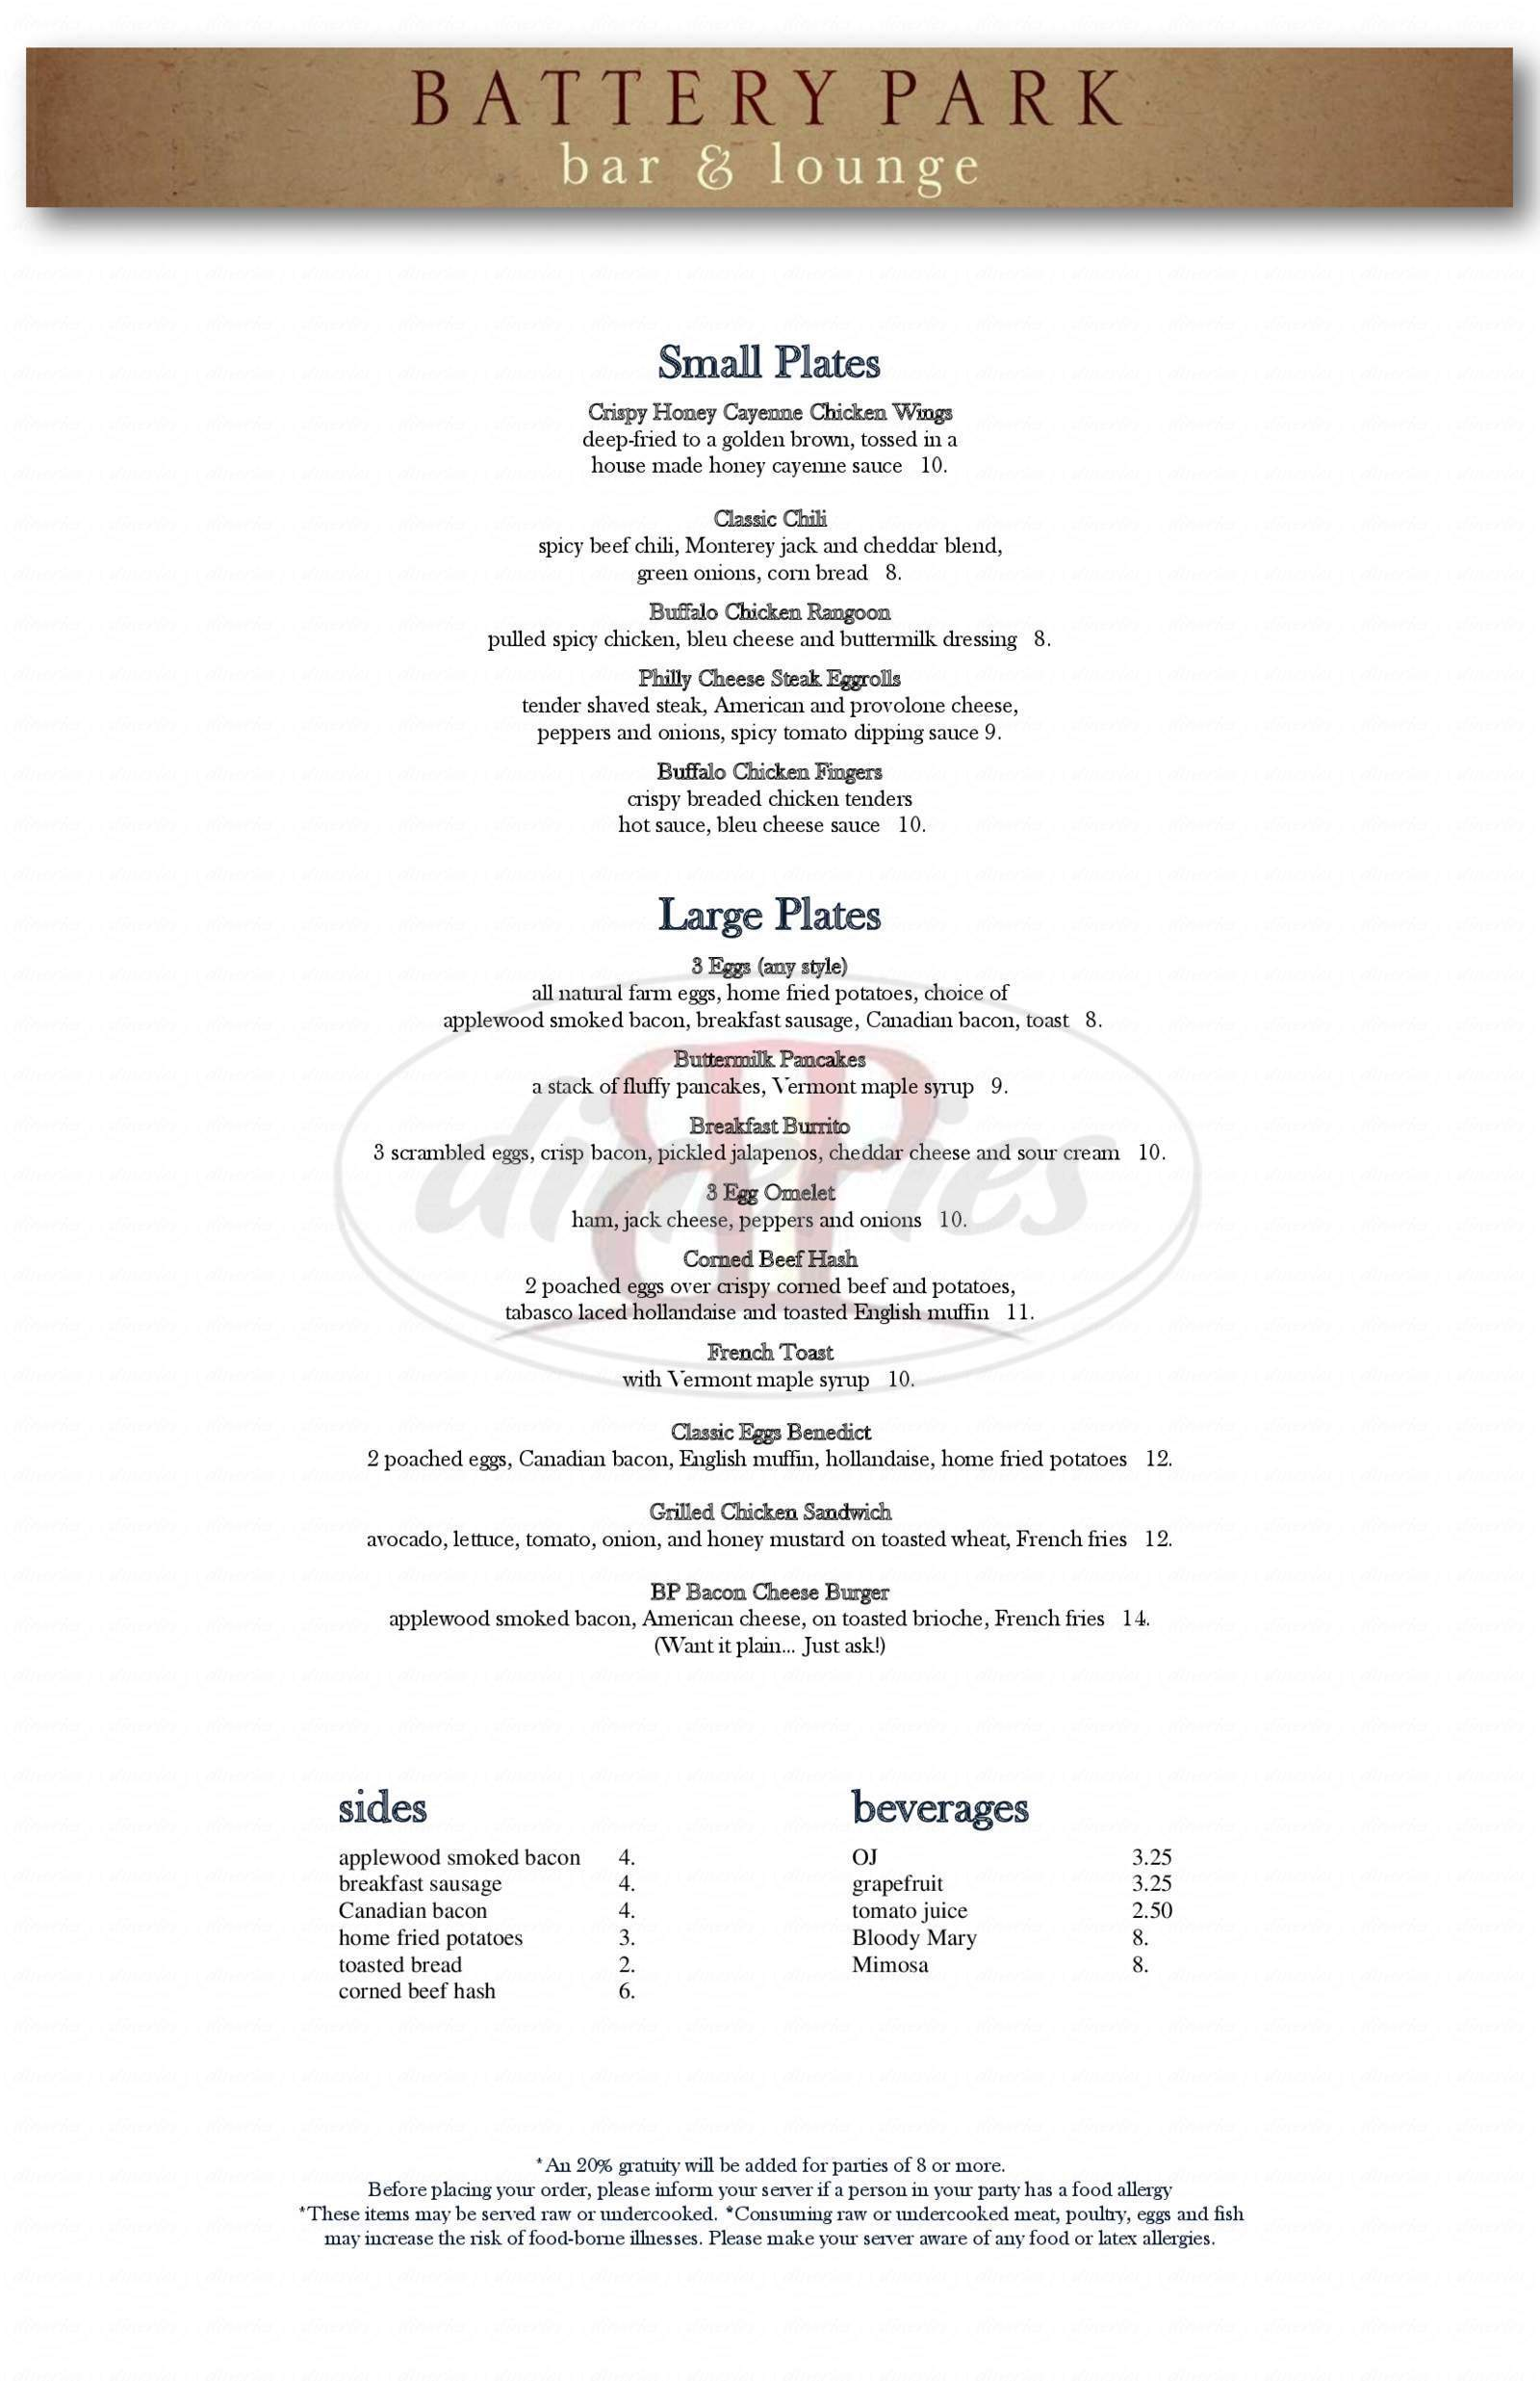 menu for Battery Park Bar & Lounge